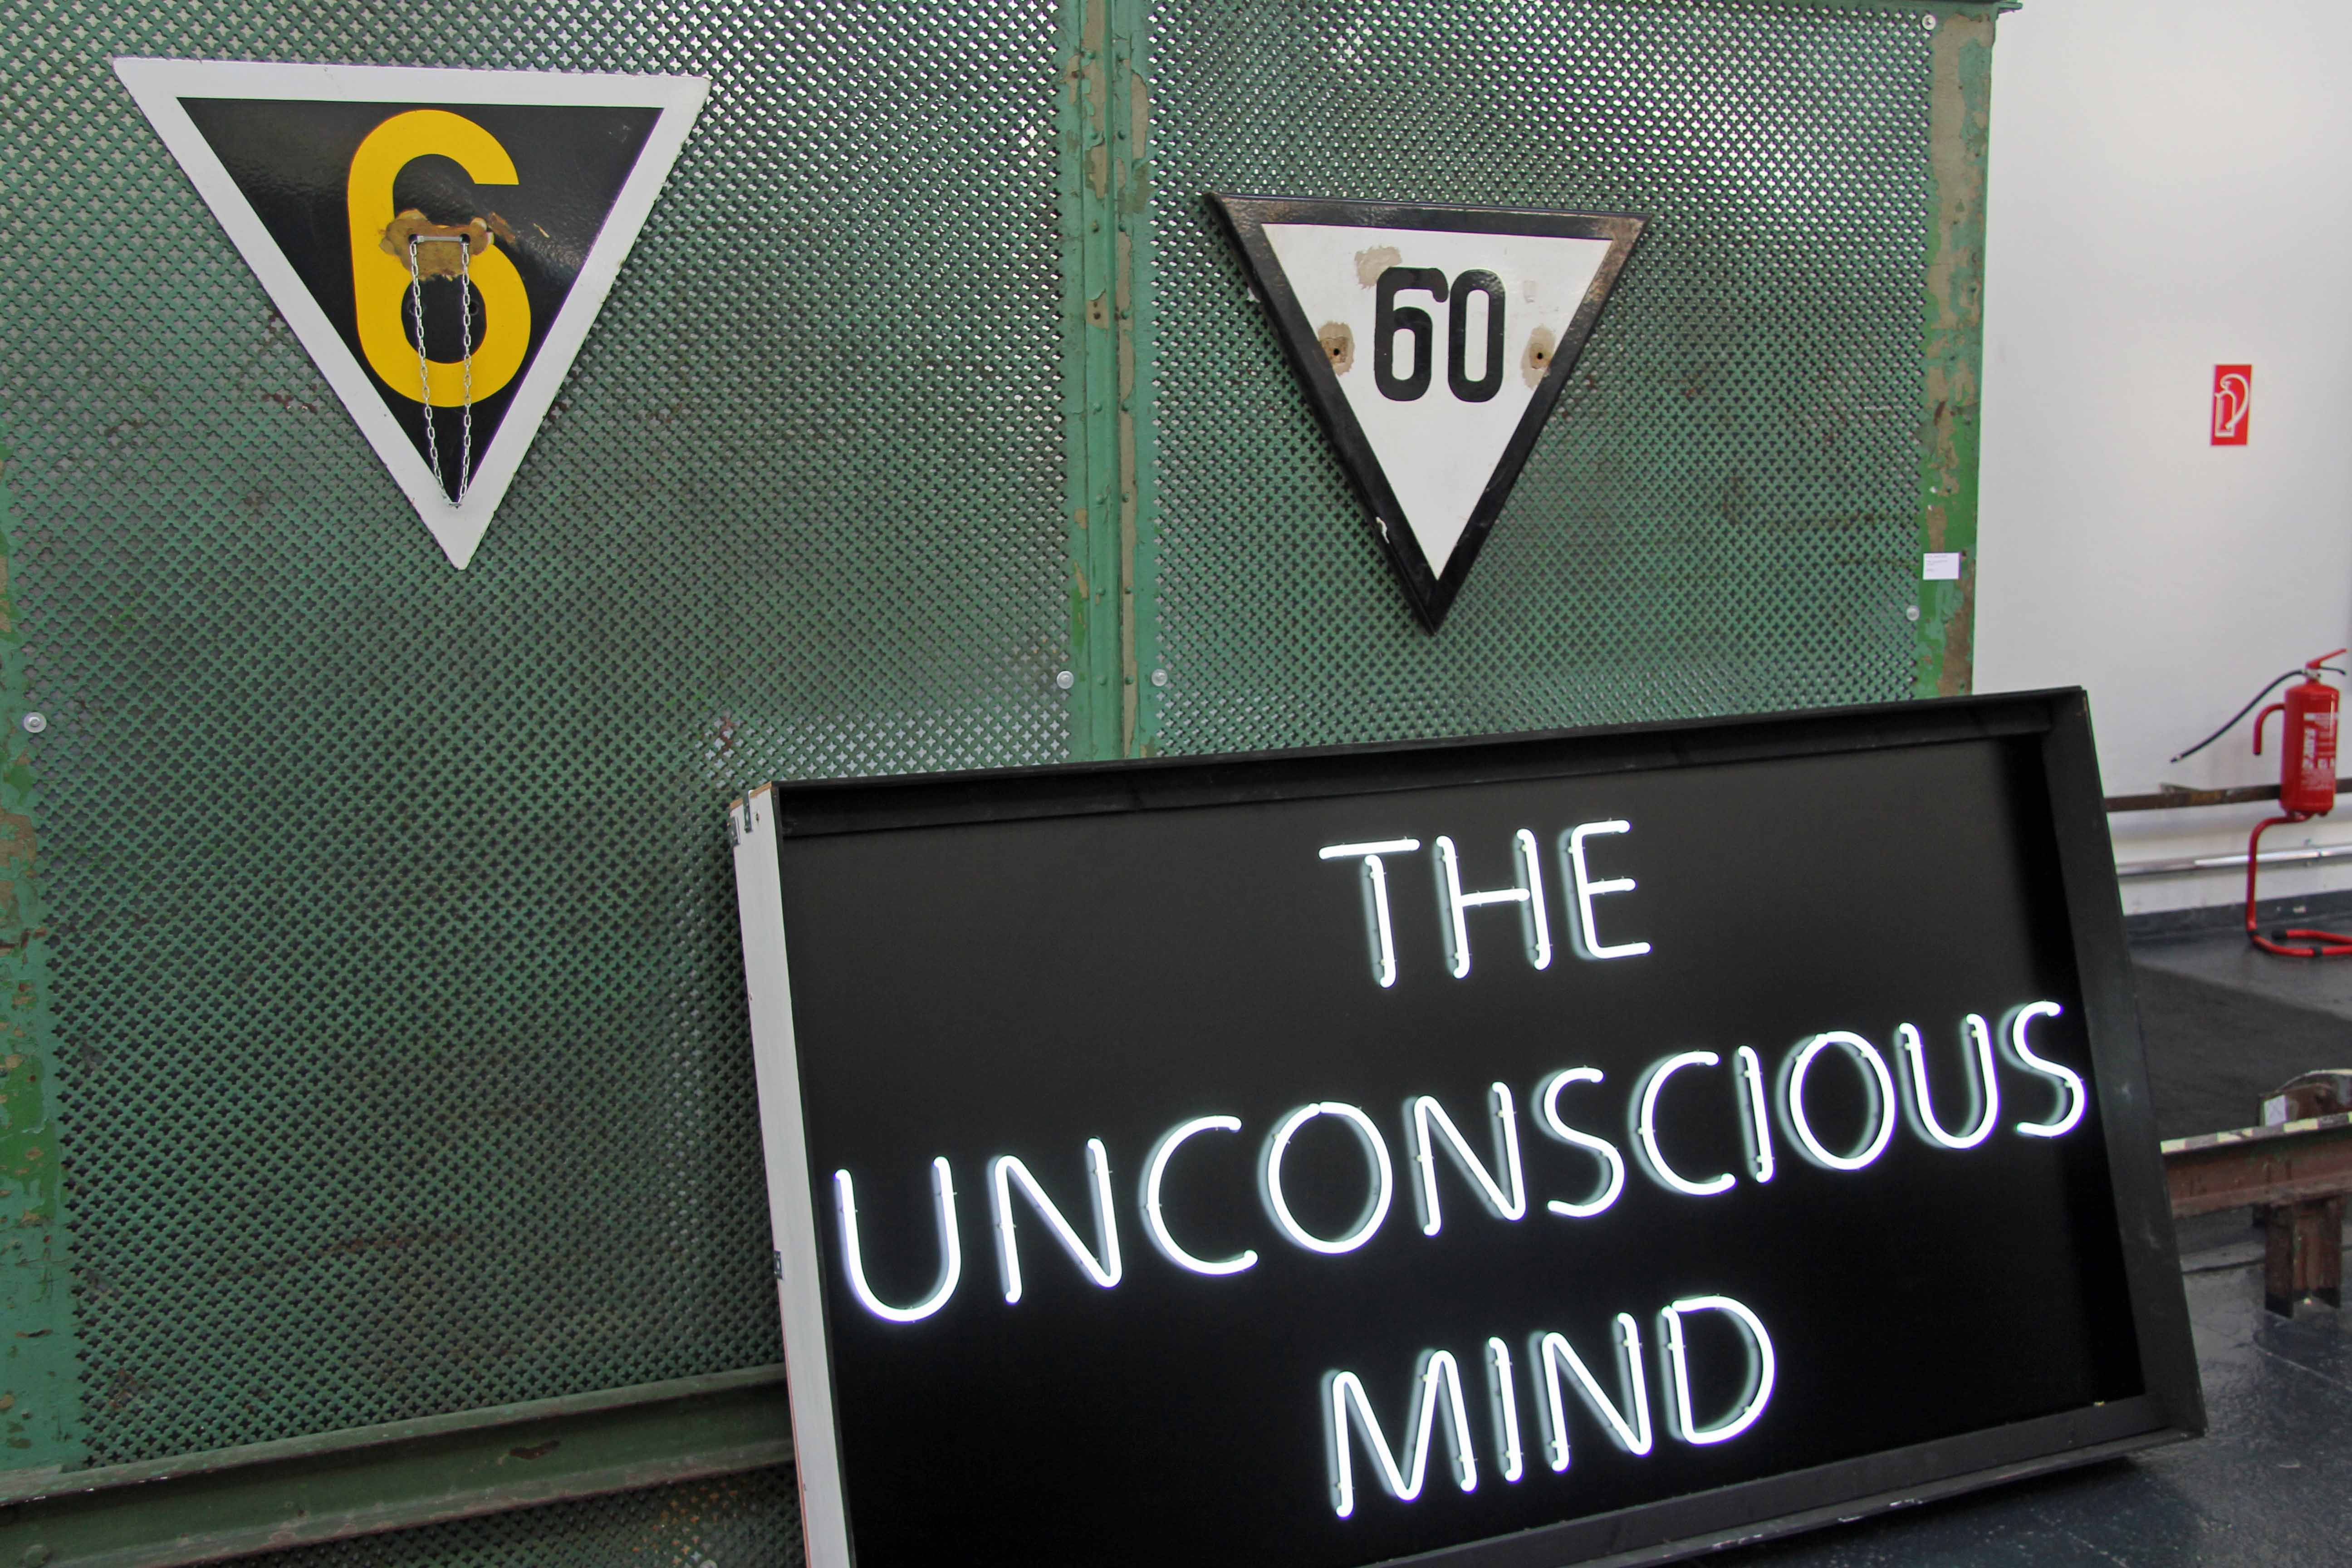 Unknown Artist - The Unconscious Mind at Stroke Urban Art Fair 2012 in Berlin